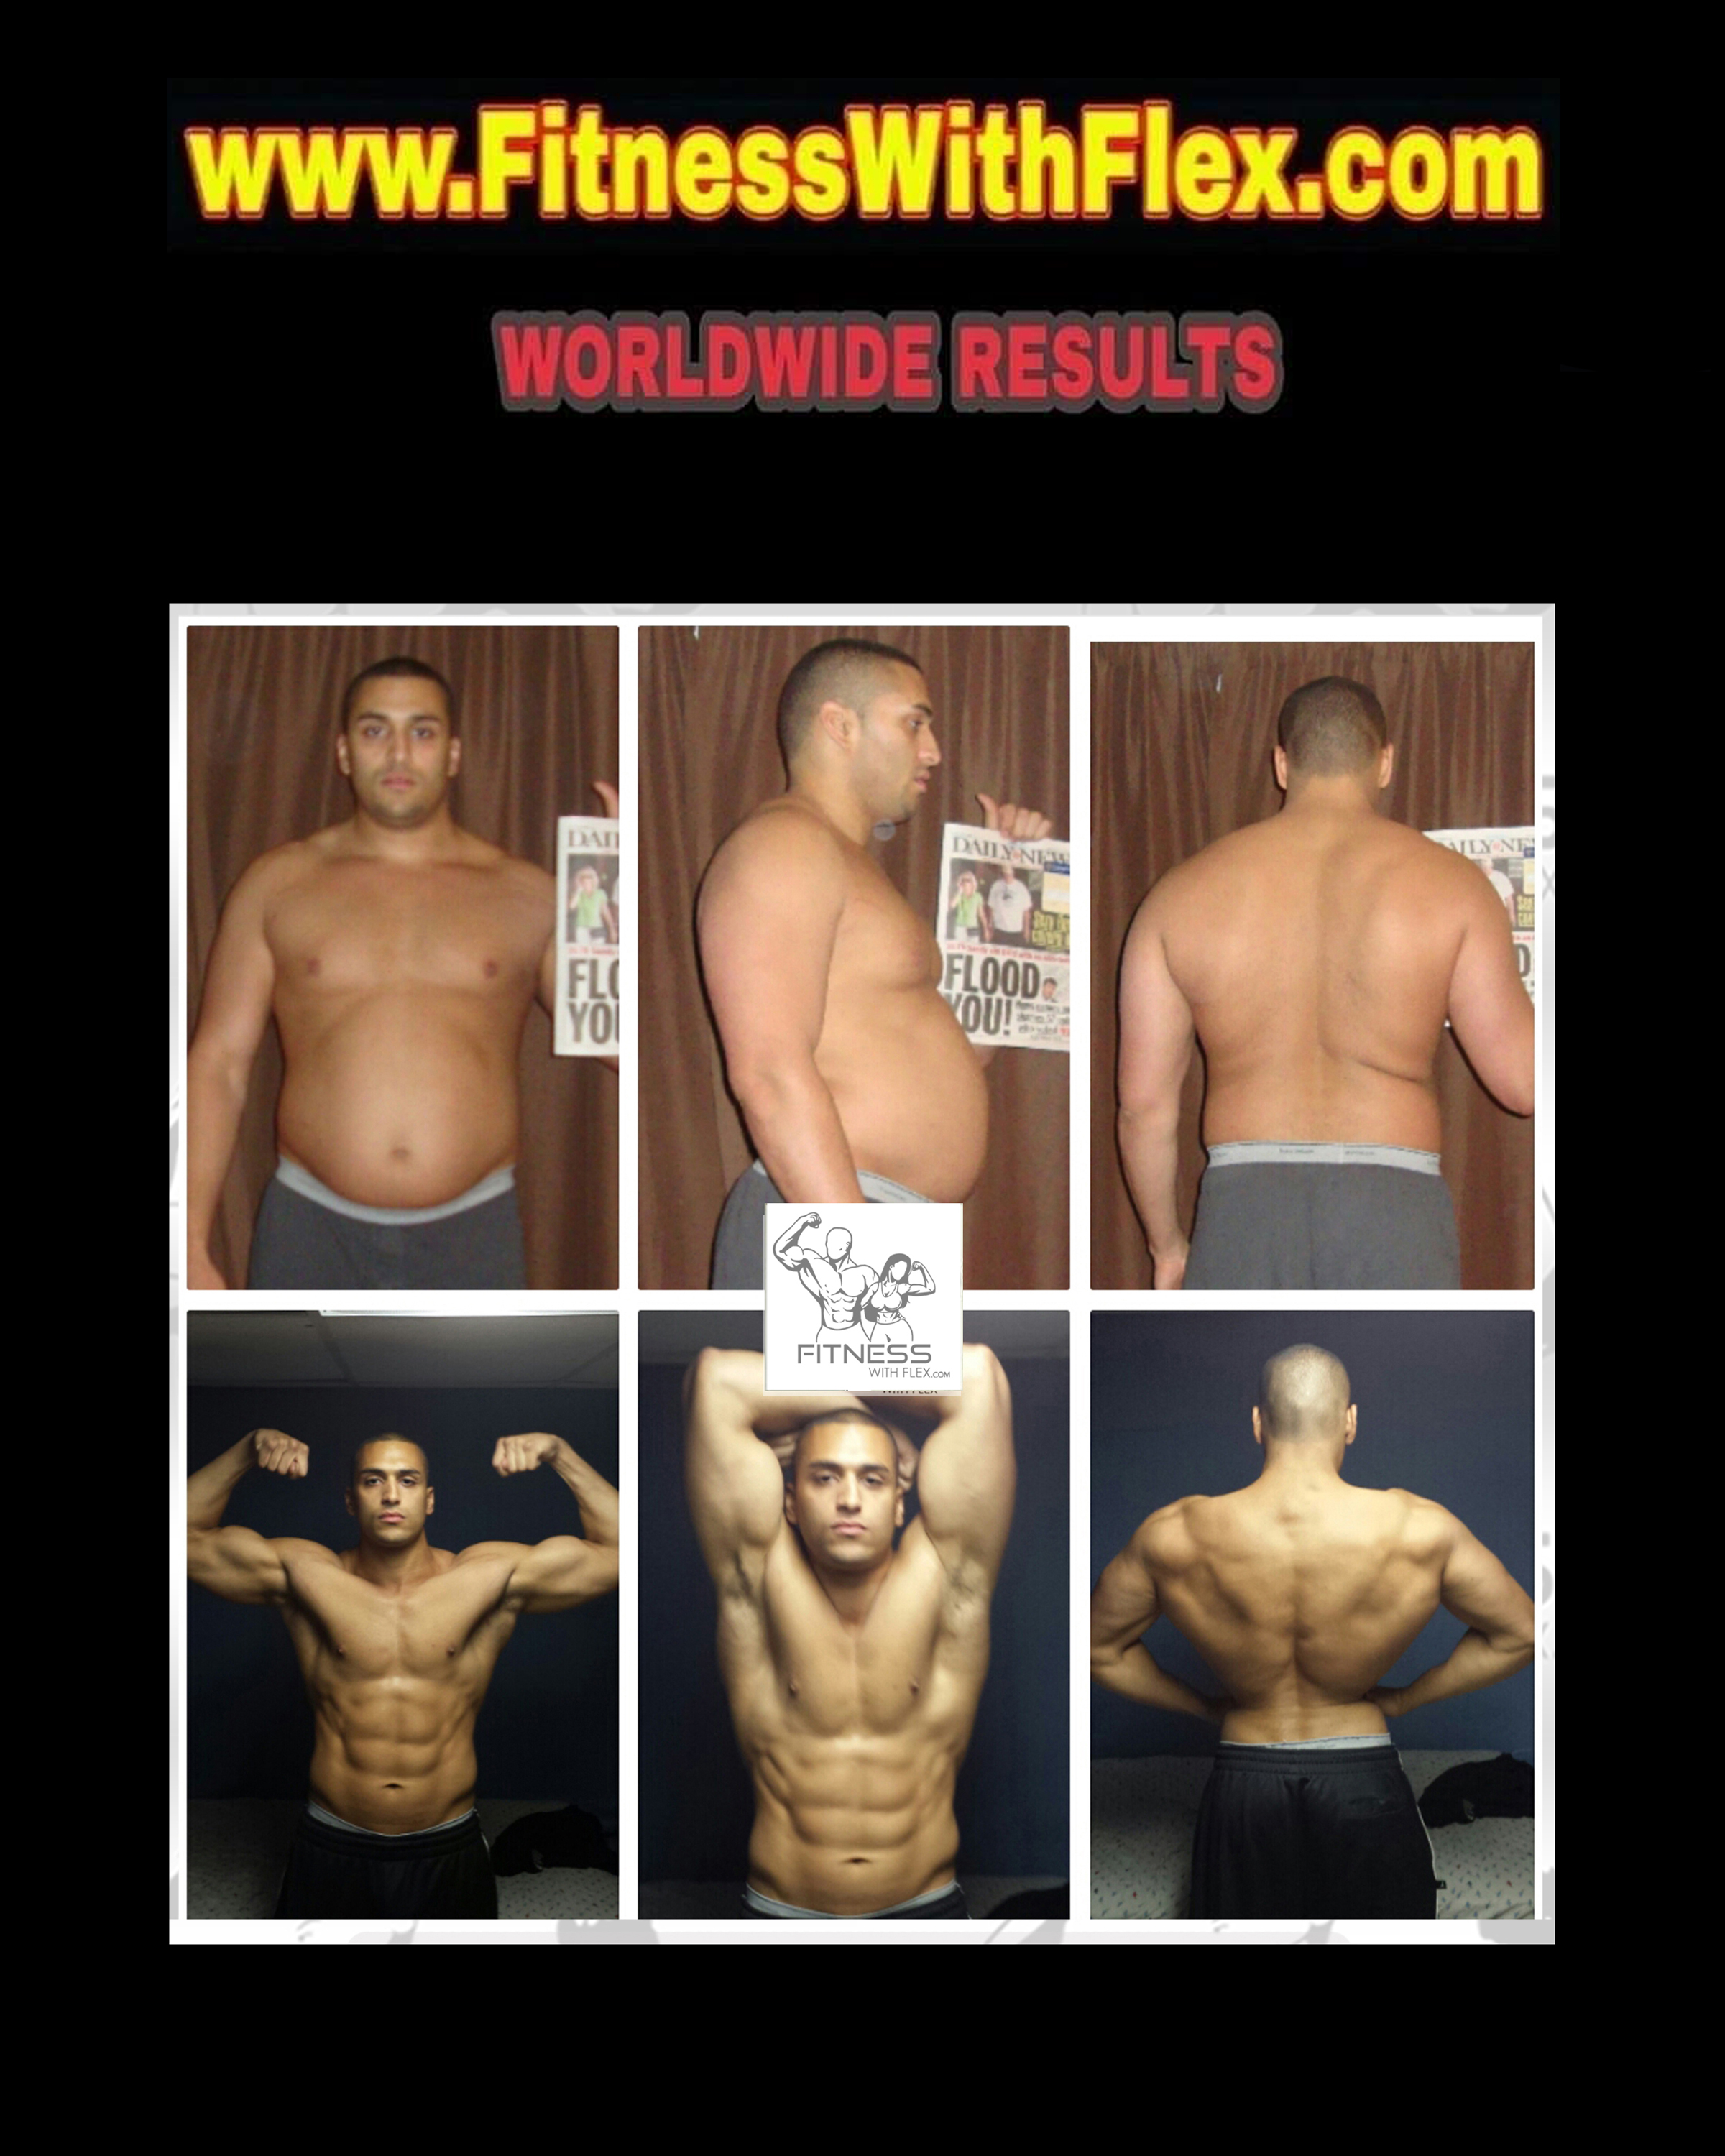 FitnessWithFlex 9 Month Transform